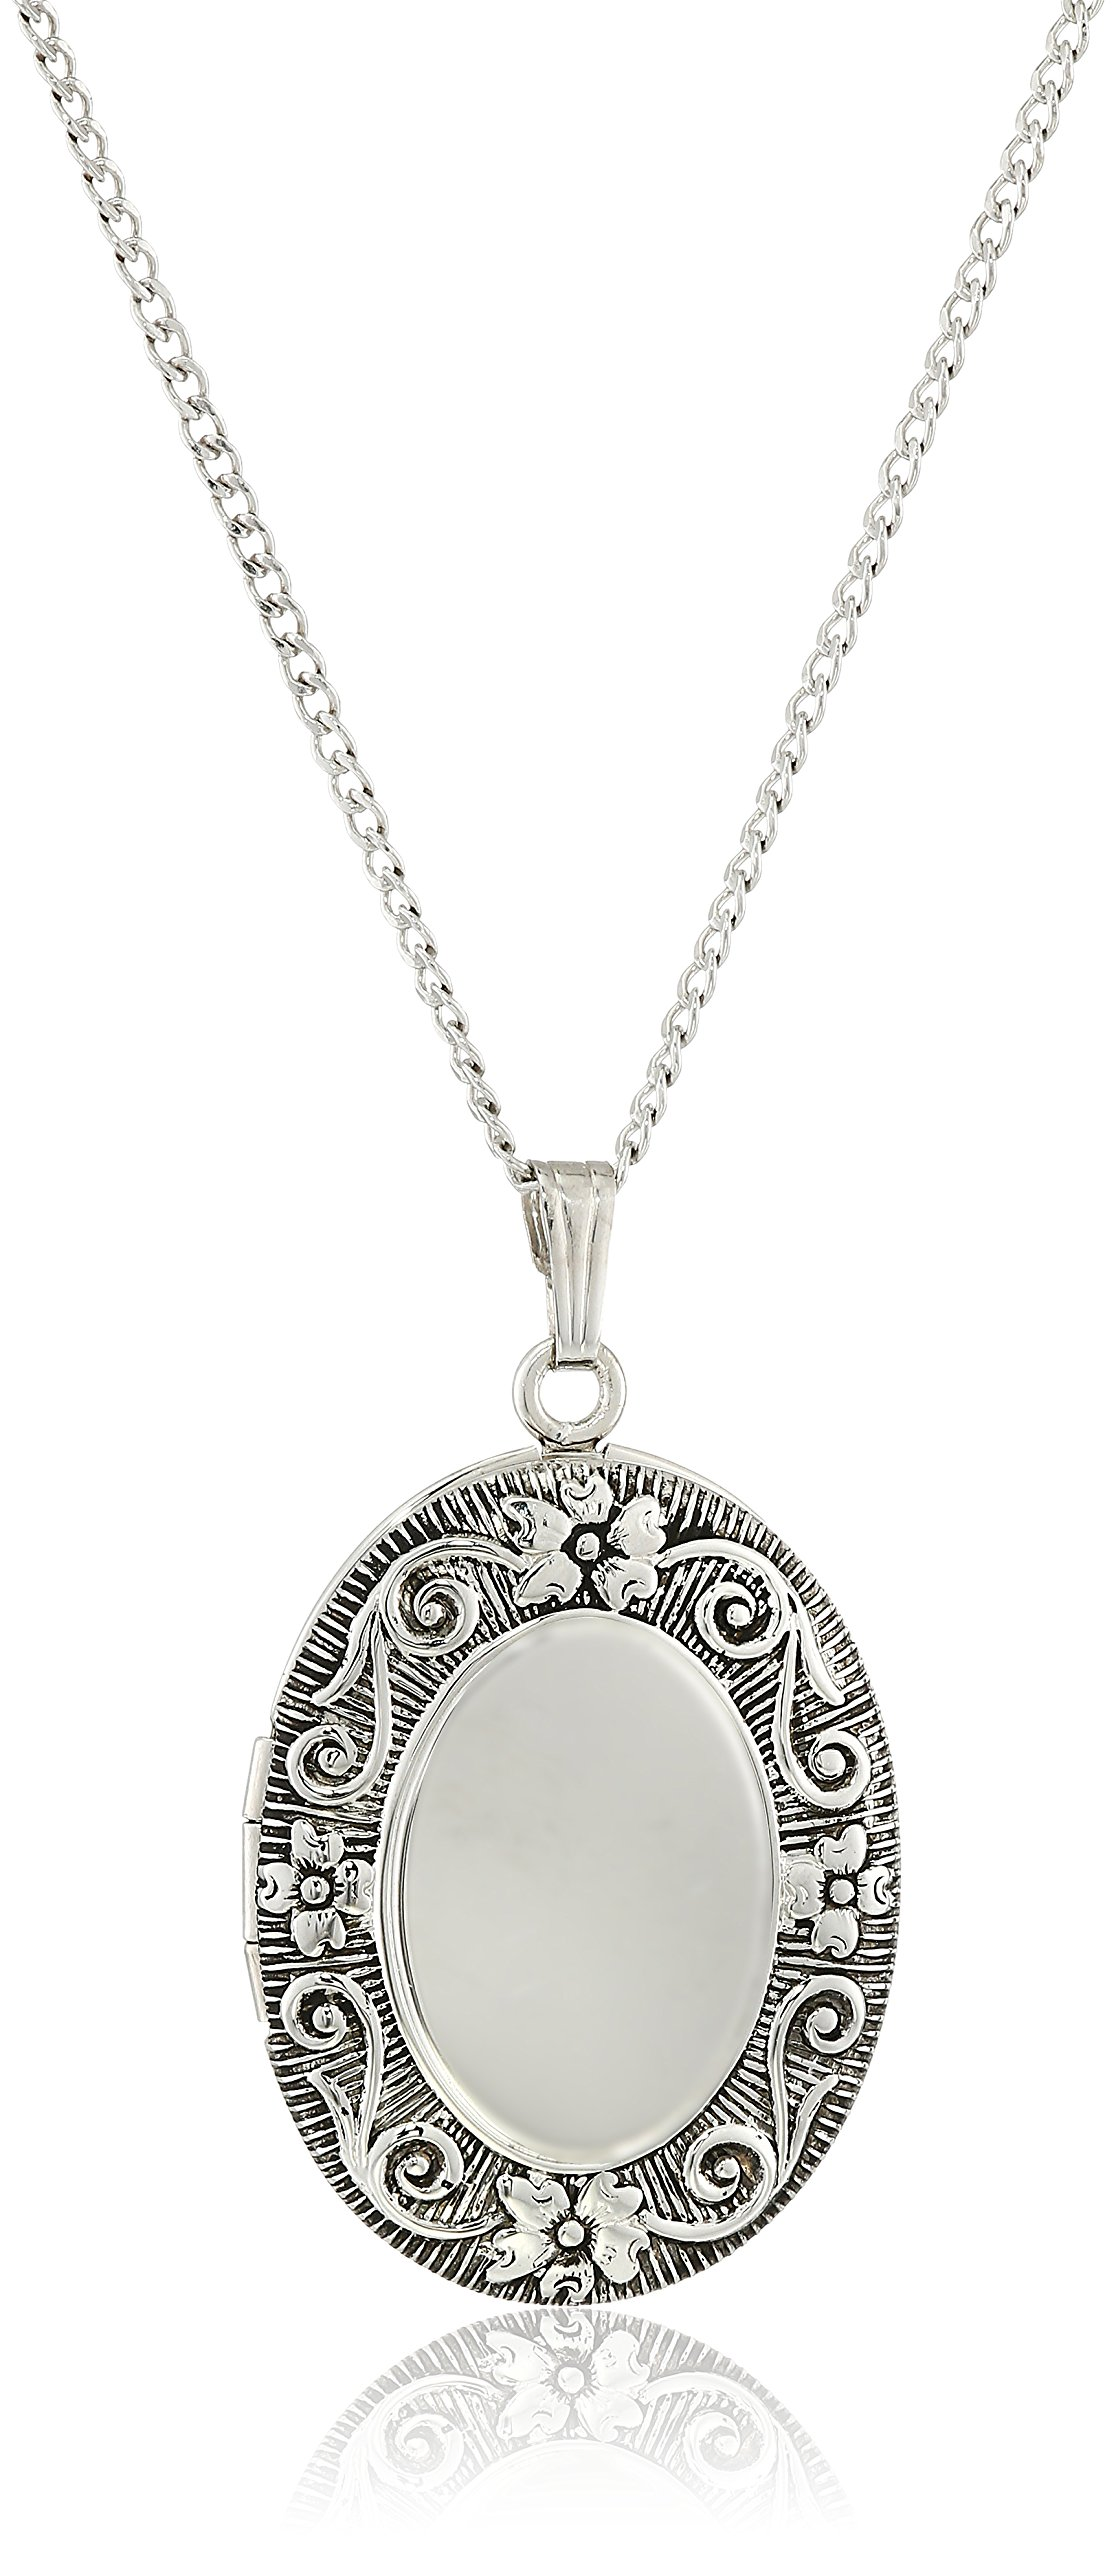 Sterling Silver Antique-Finish Embossed Oval Locket Necklace